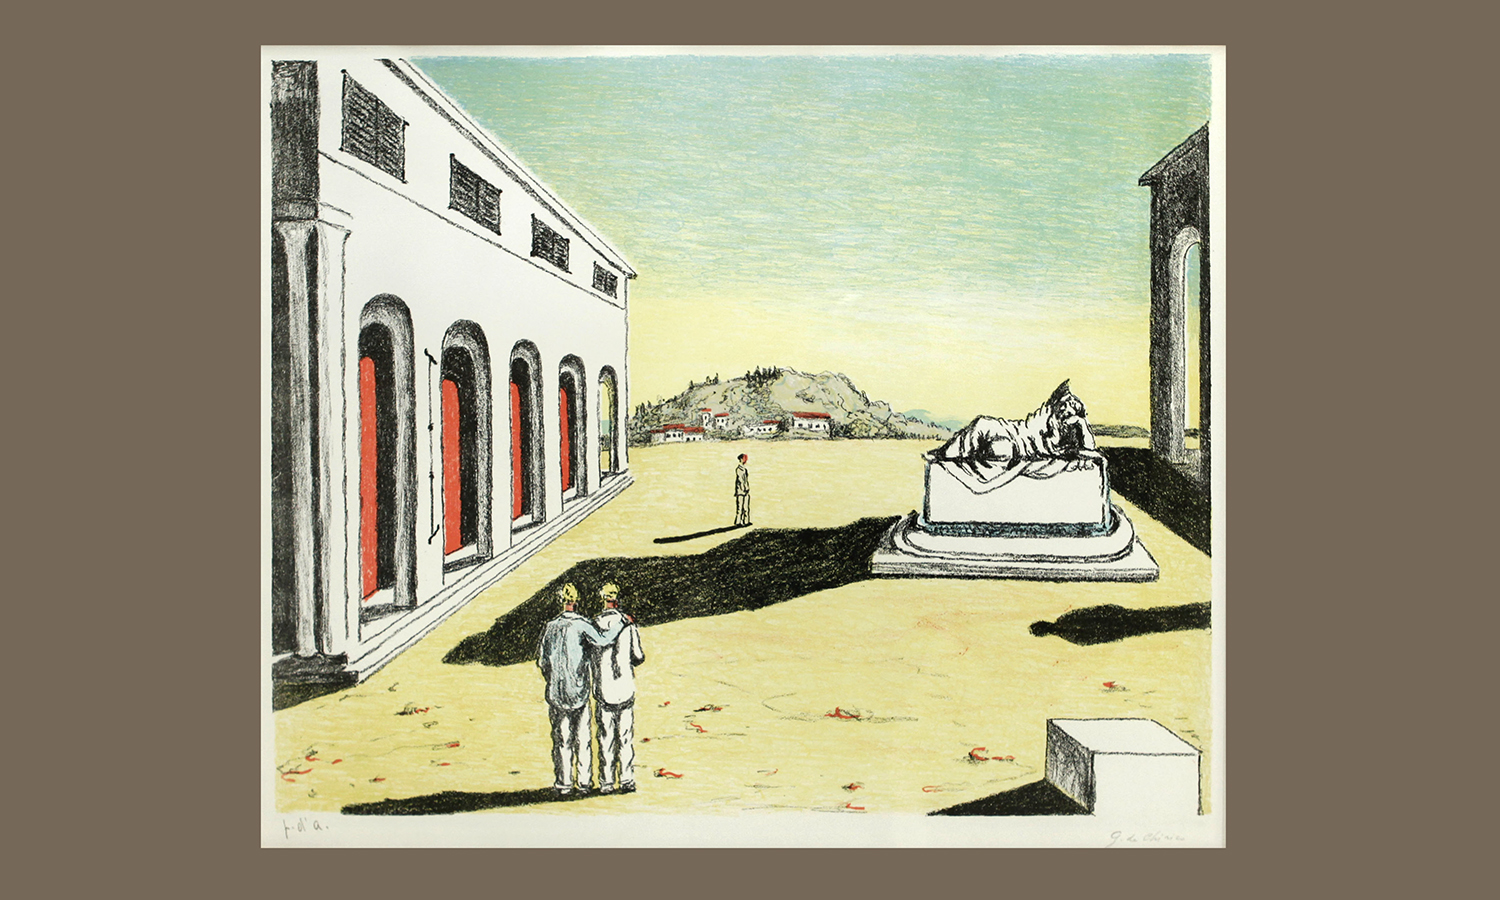 """Giorgio de Chirico (1888-1978, Italy)""""Ritorno d'Autumno, 1969. Lithograph, 46 x 59 cm. Gift of  Robert North in memory of  Marion de Mauriac North '32. hws-d-35. © 2012 Artists Rights Society (ARS), New York / SIAE, Rome"""